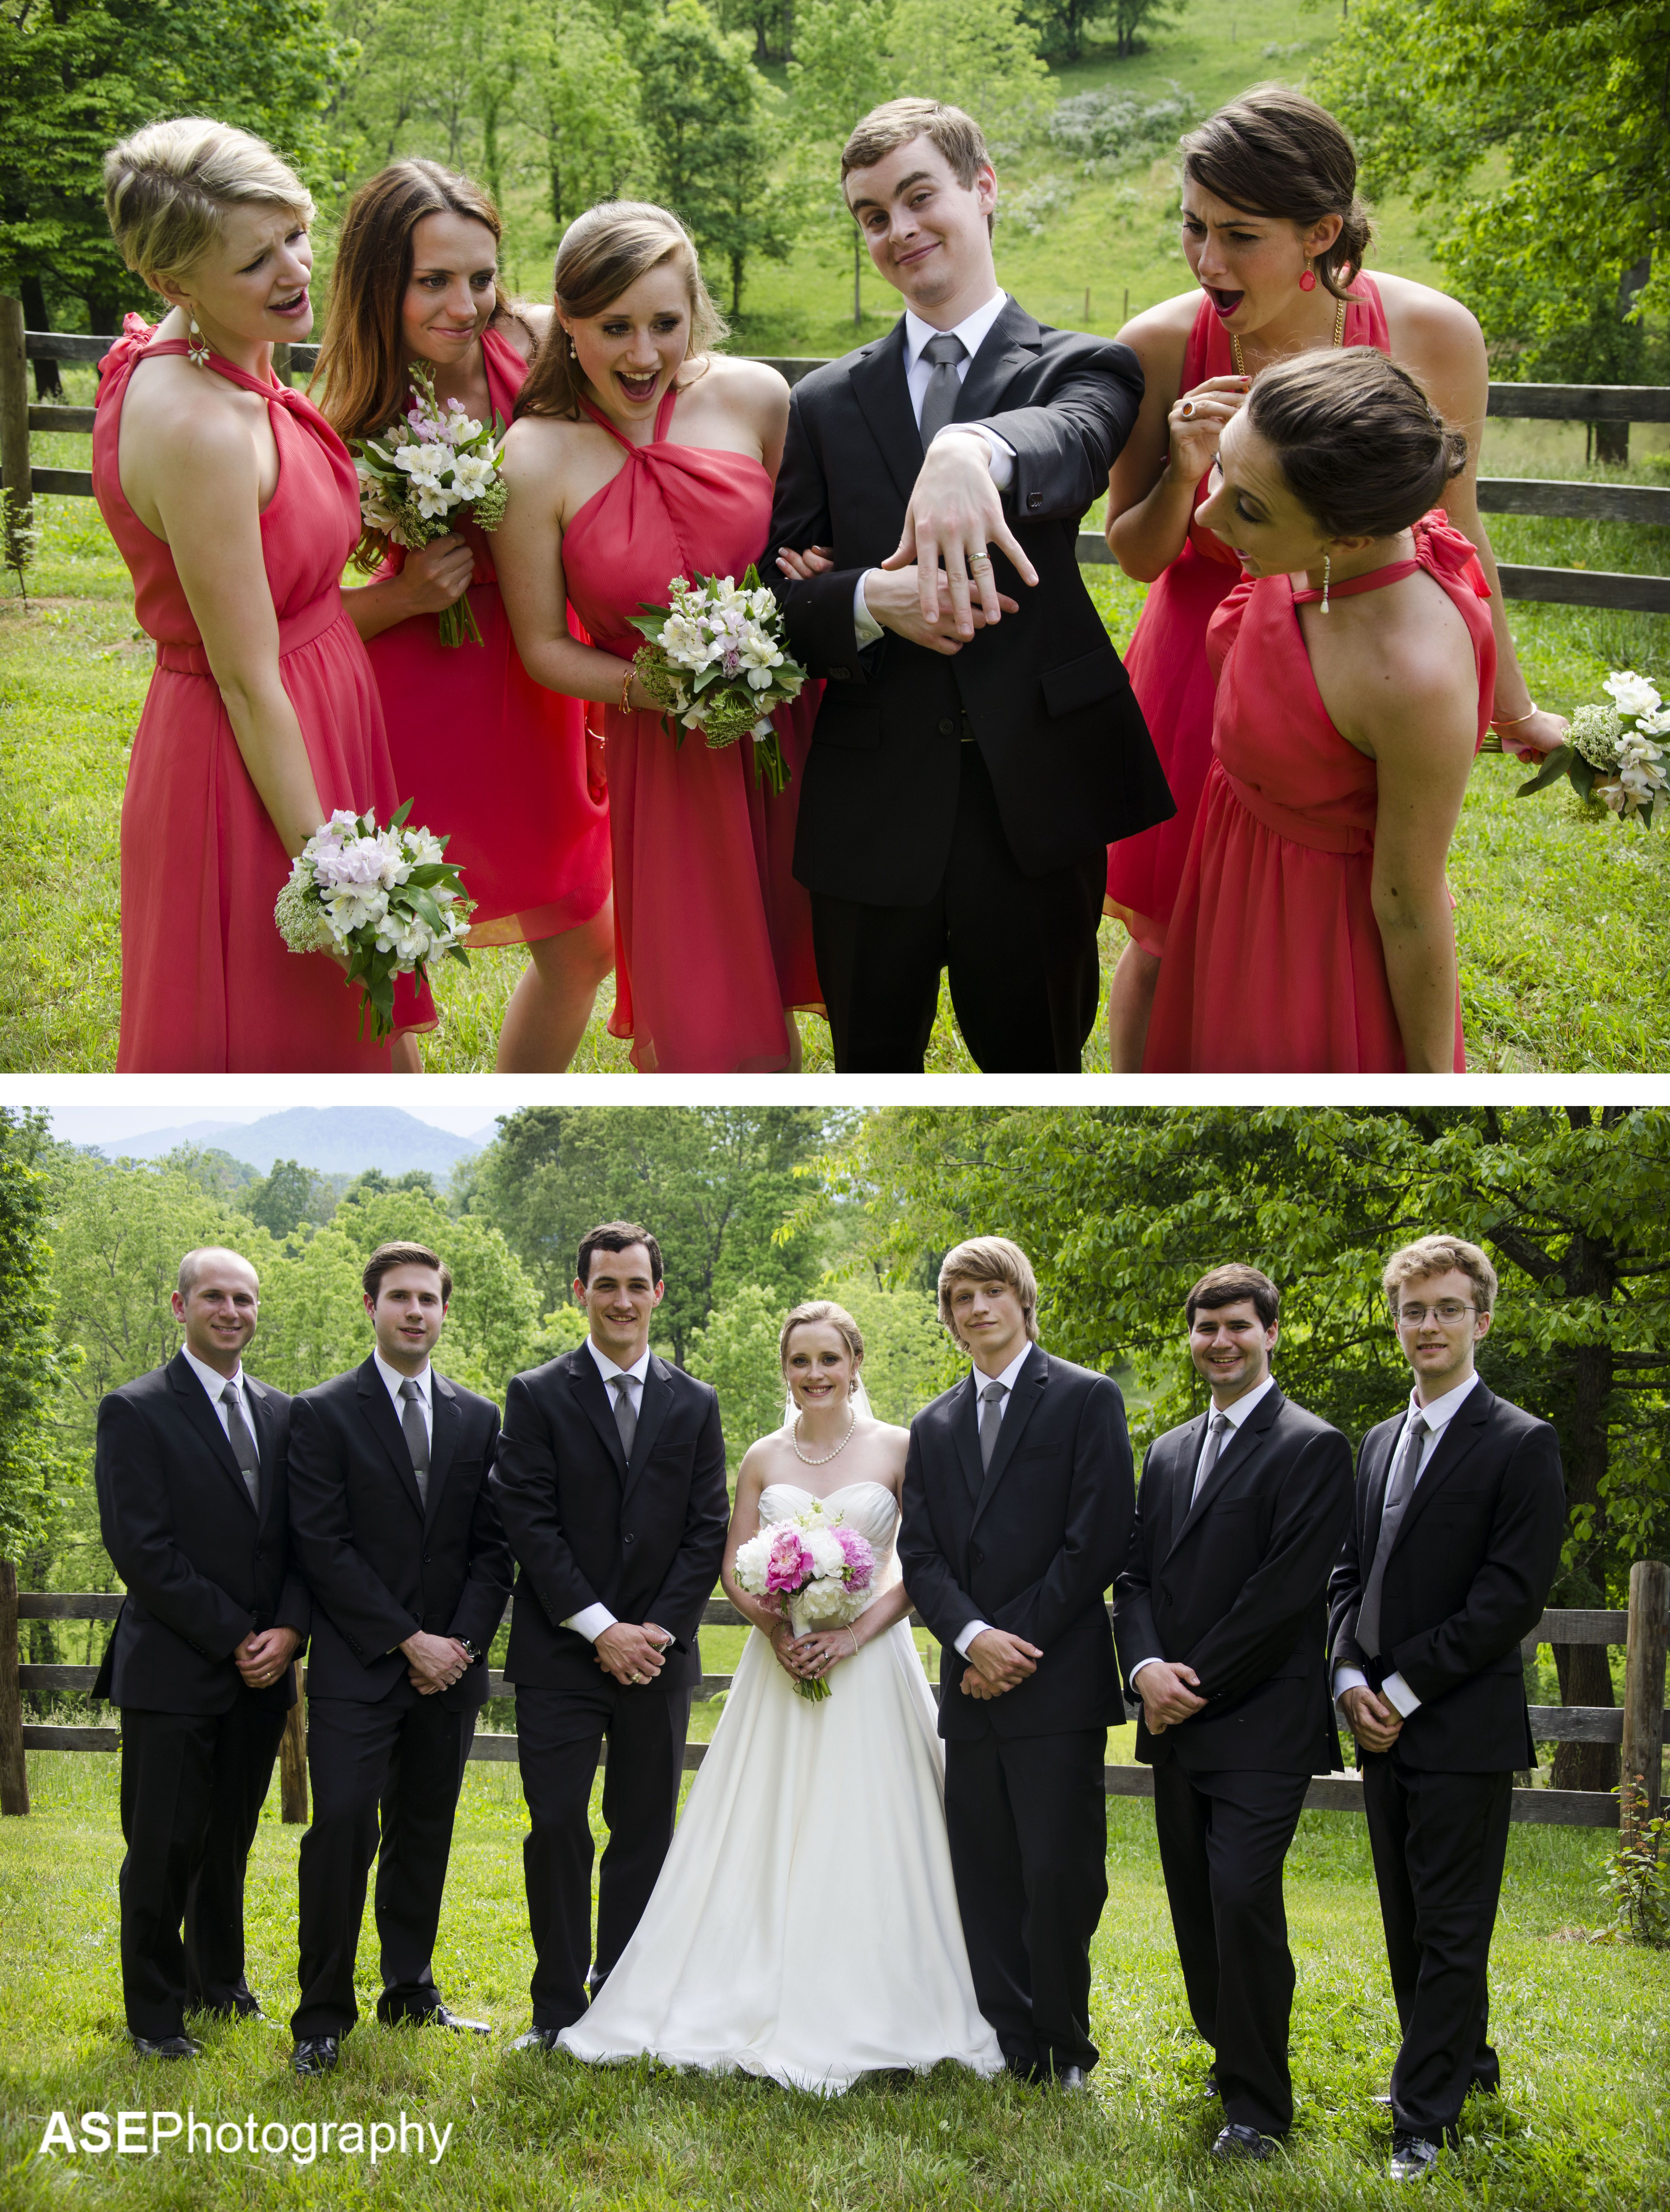 Funny Wedding Photography: Bridesmaids With Groom And